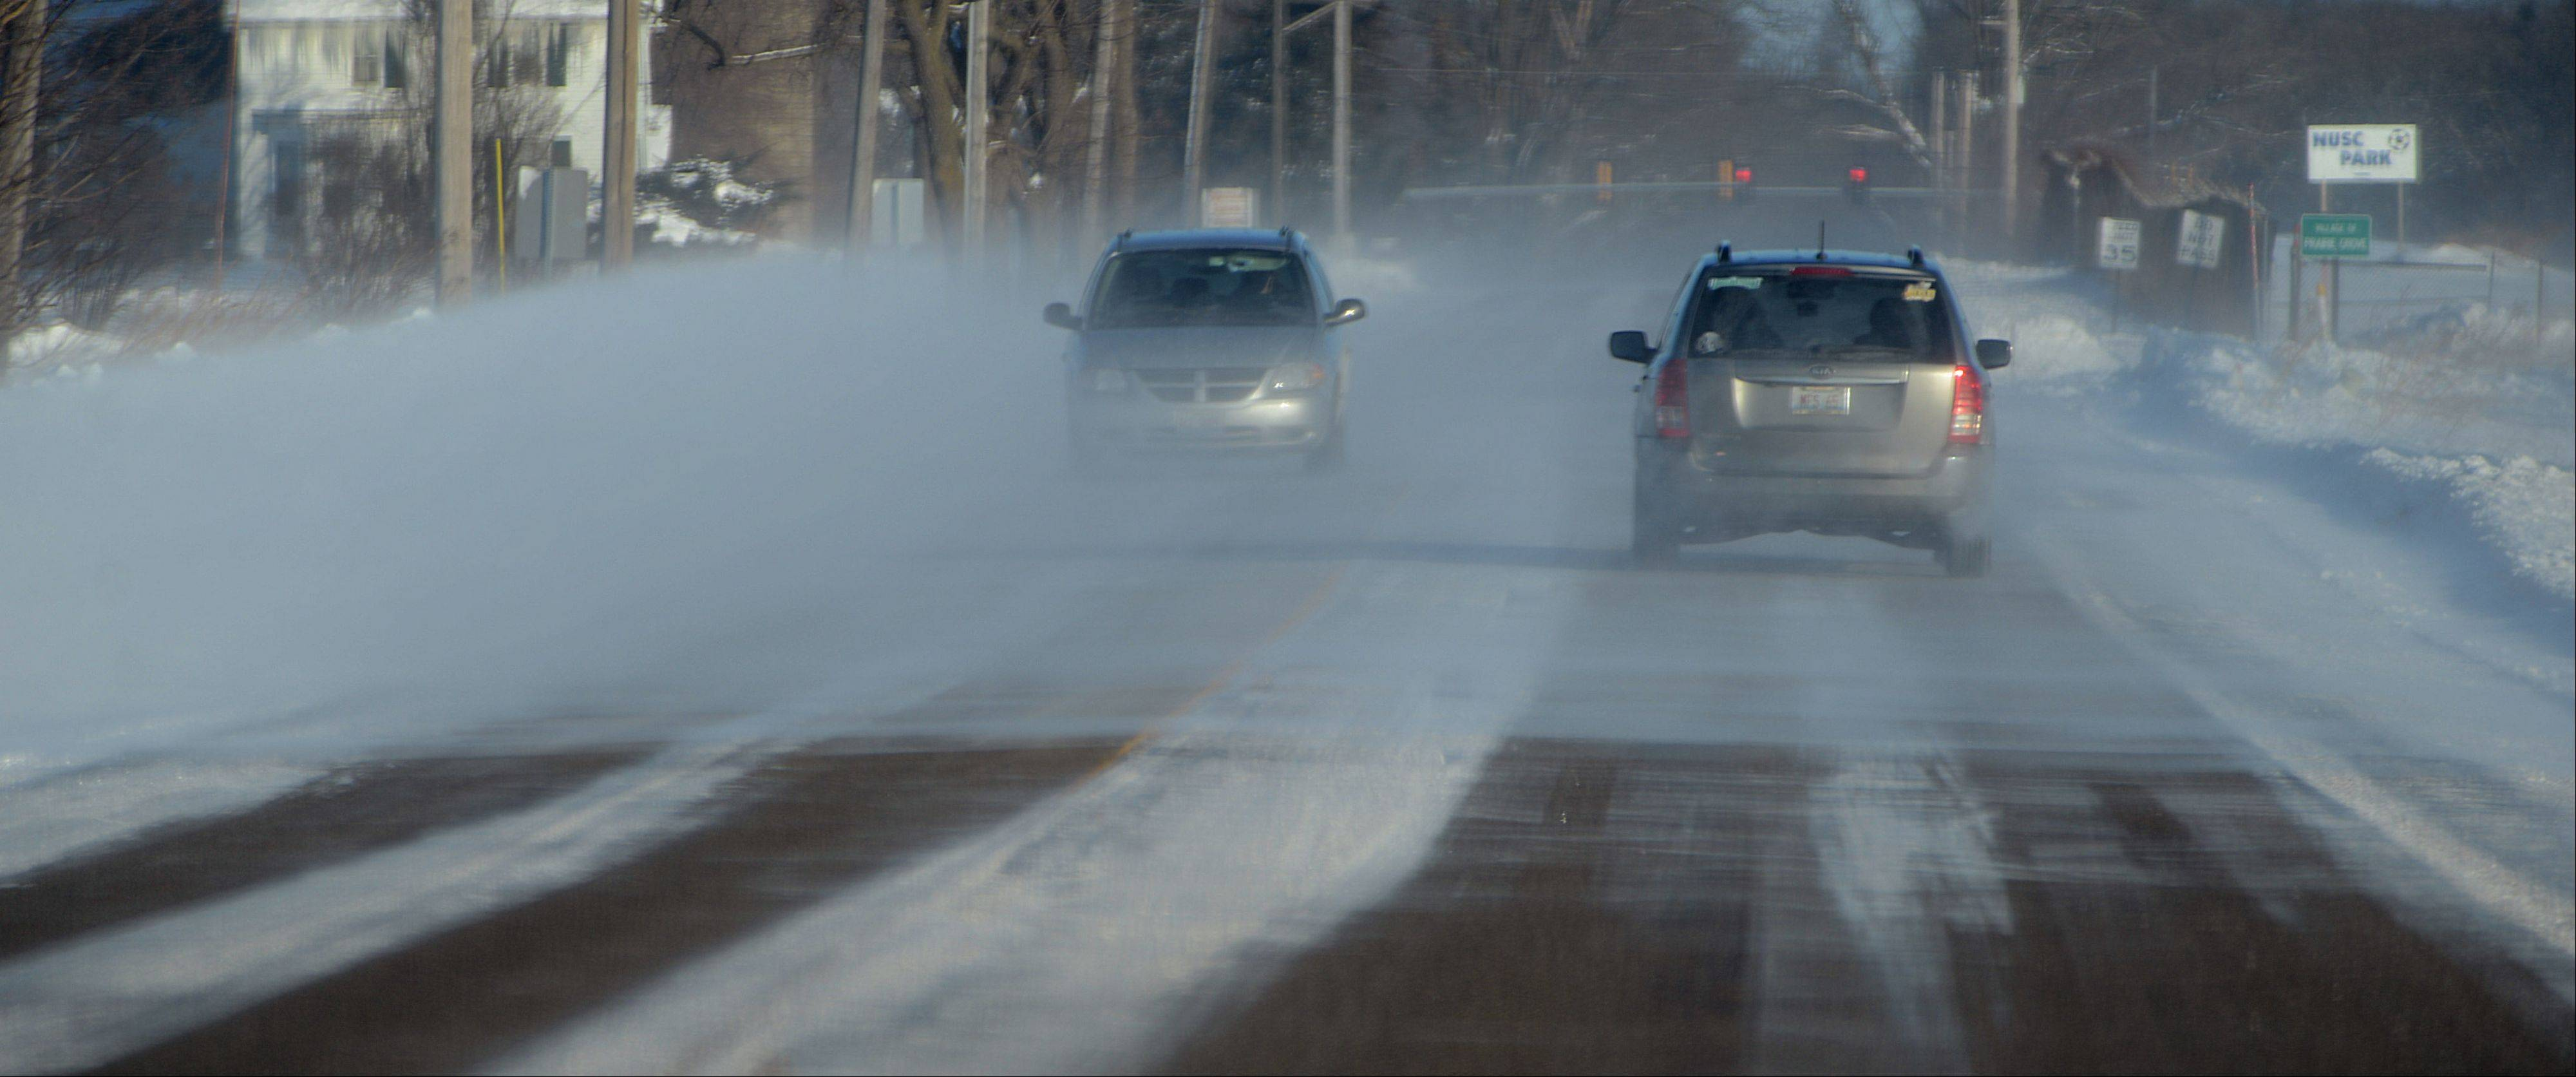 High winds blow snow across Valley View Road west of Island Lake impairing drivers' visibility Monday morning.